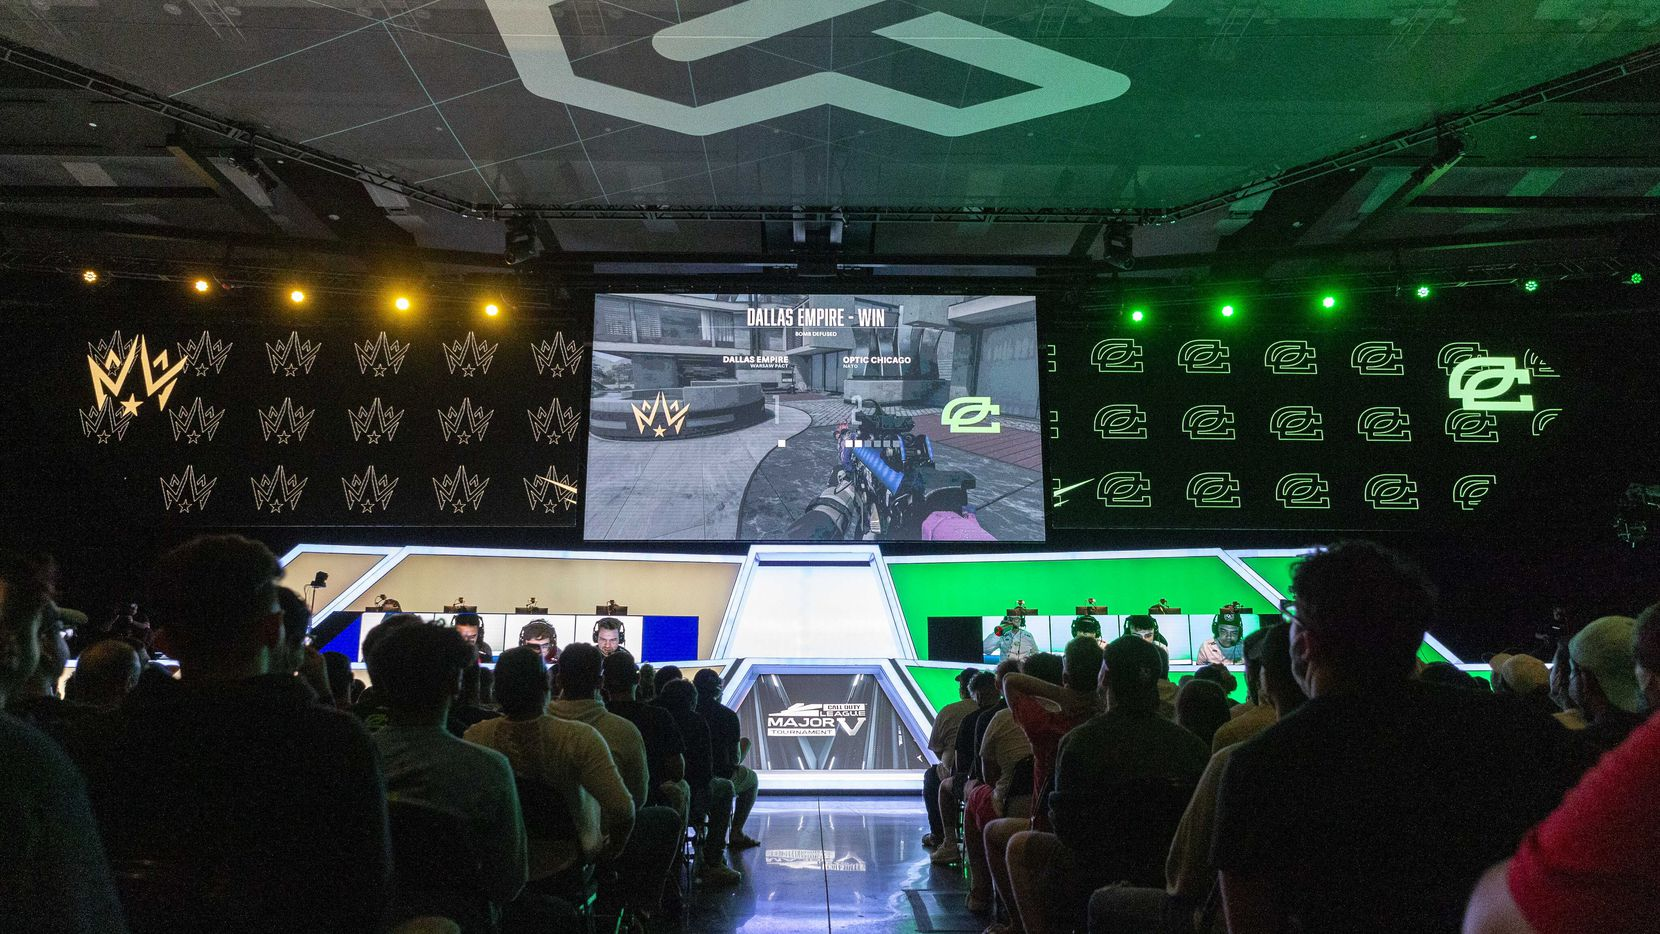 Fans watch a match between Dallas Empire and Chicago OpTic during the Call of Duty League Major V tournament at Esports Stadium Arlington on Sunday, Aug. 1, 2021, in Arlington. Empire finished 4th in the tournament after a 3-1 loss to OpTic. (Elias Valverde II/The Dallas Morning News)